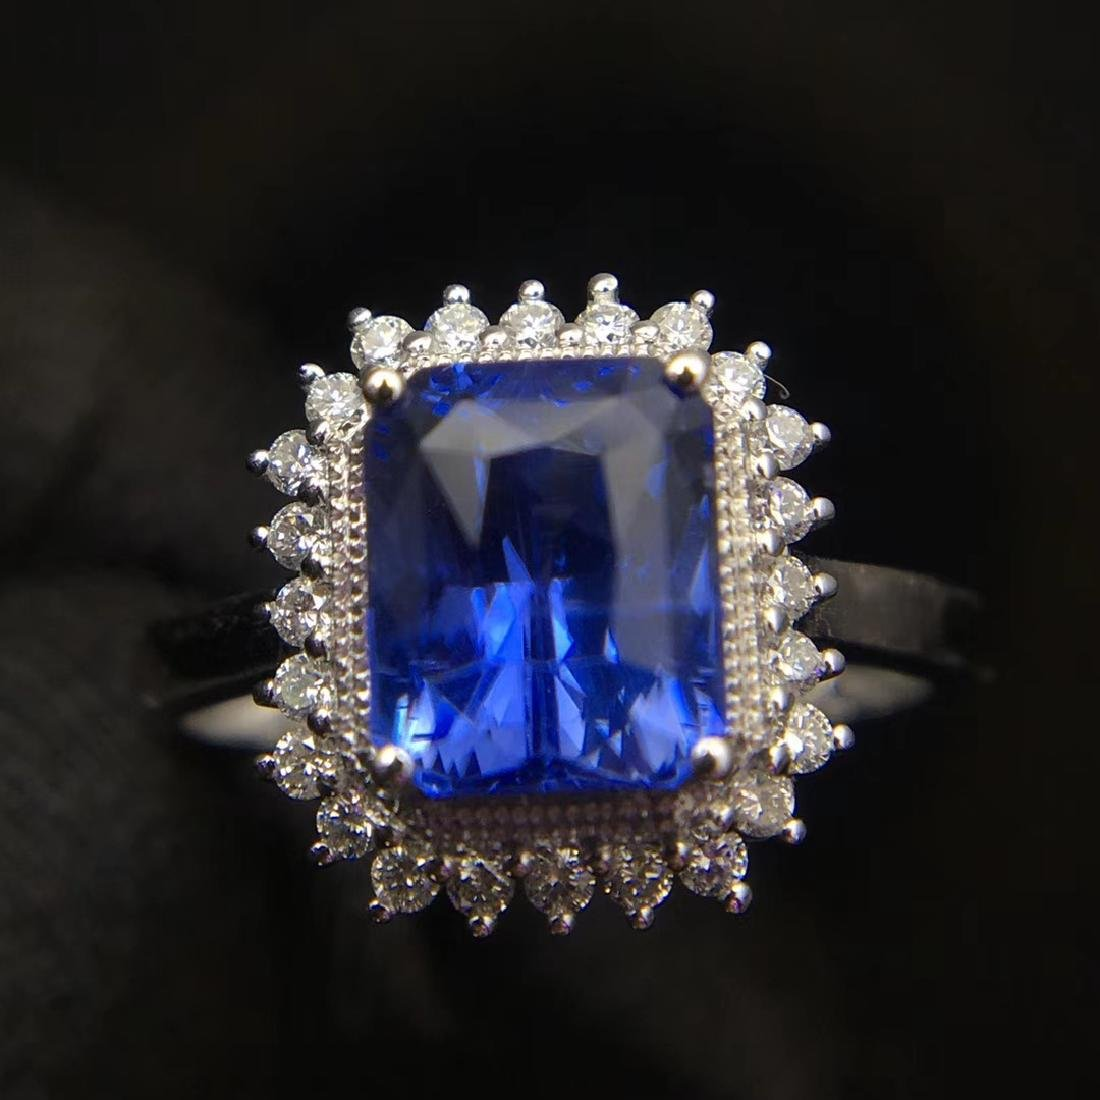 2.52ct Sapphire Ring in 18kt White Gold